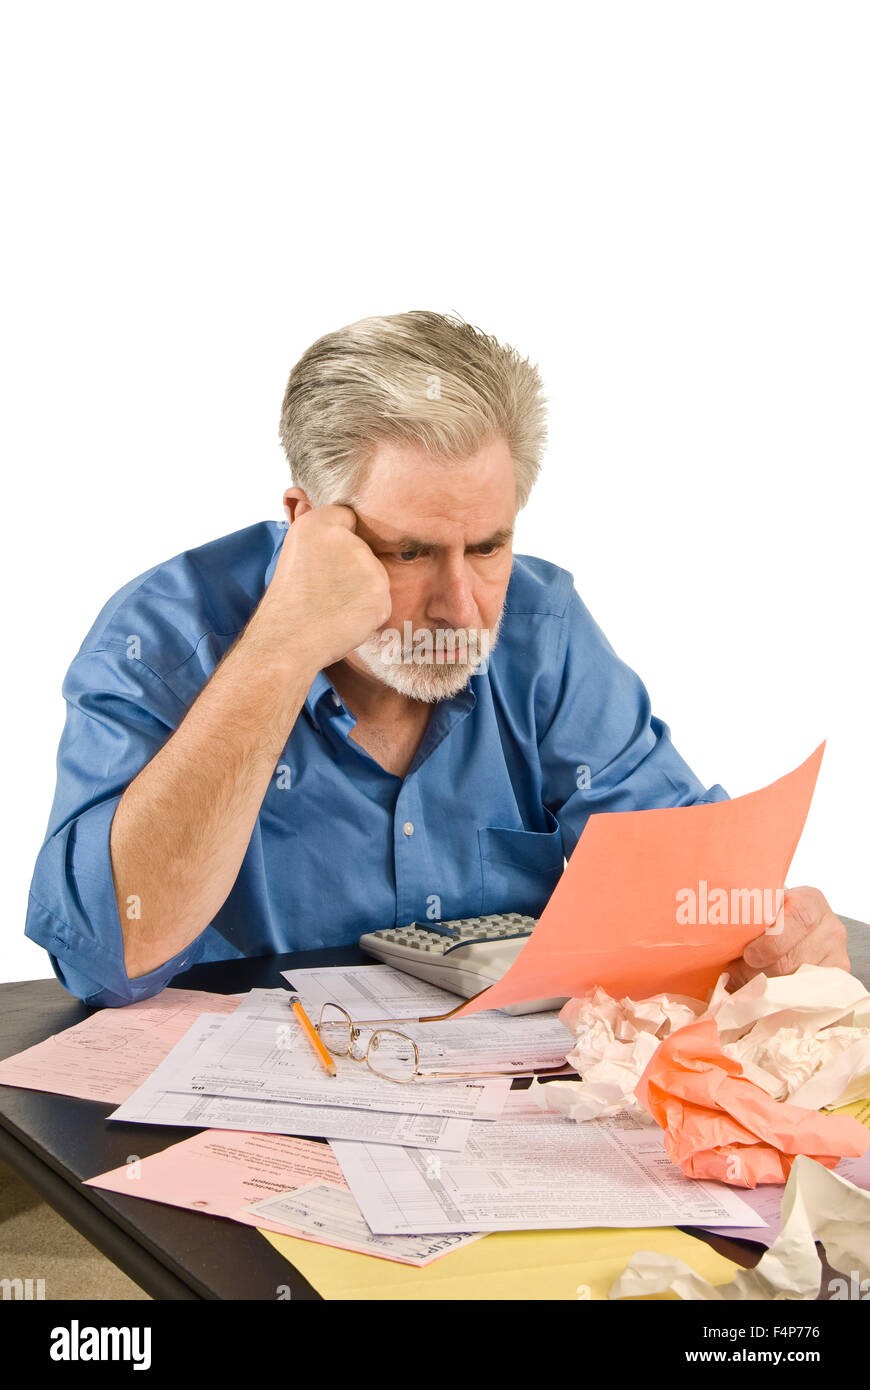 Concentrating On Taxes - Stock Image